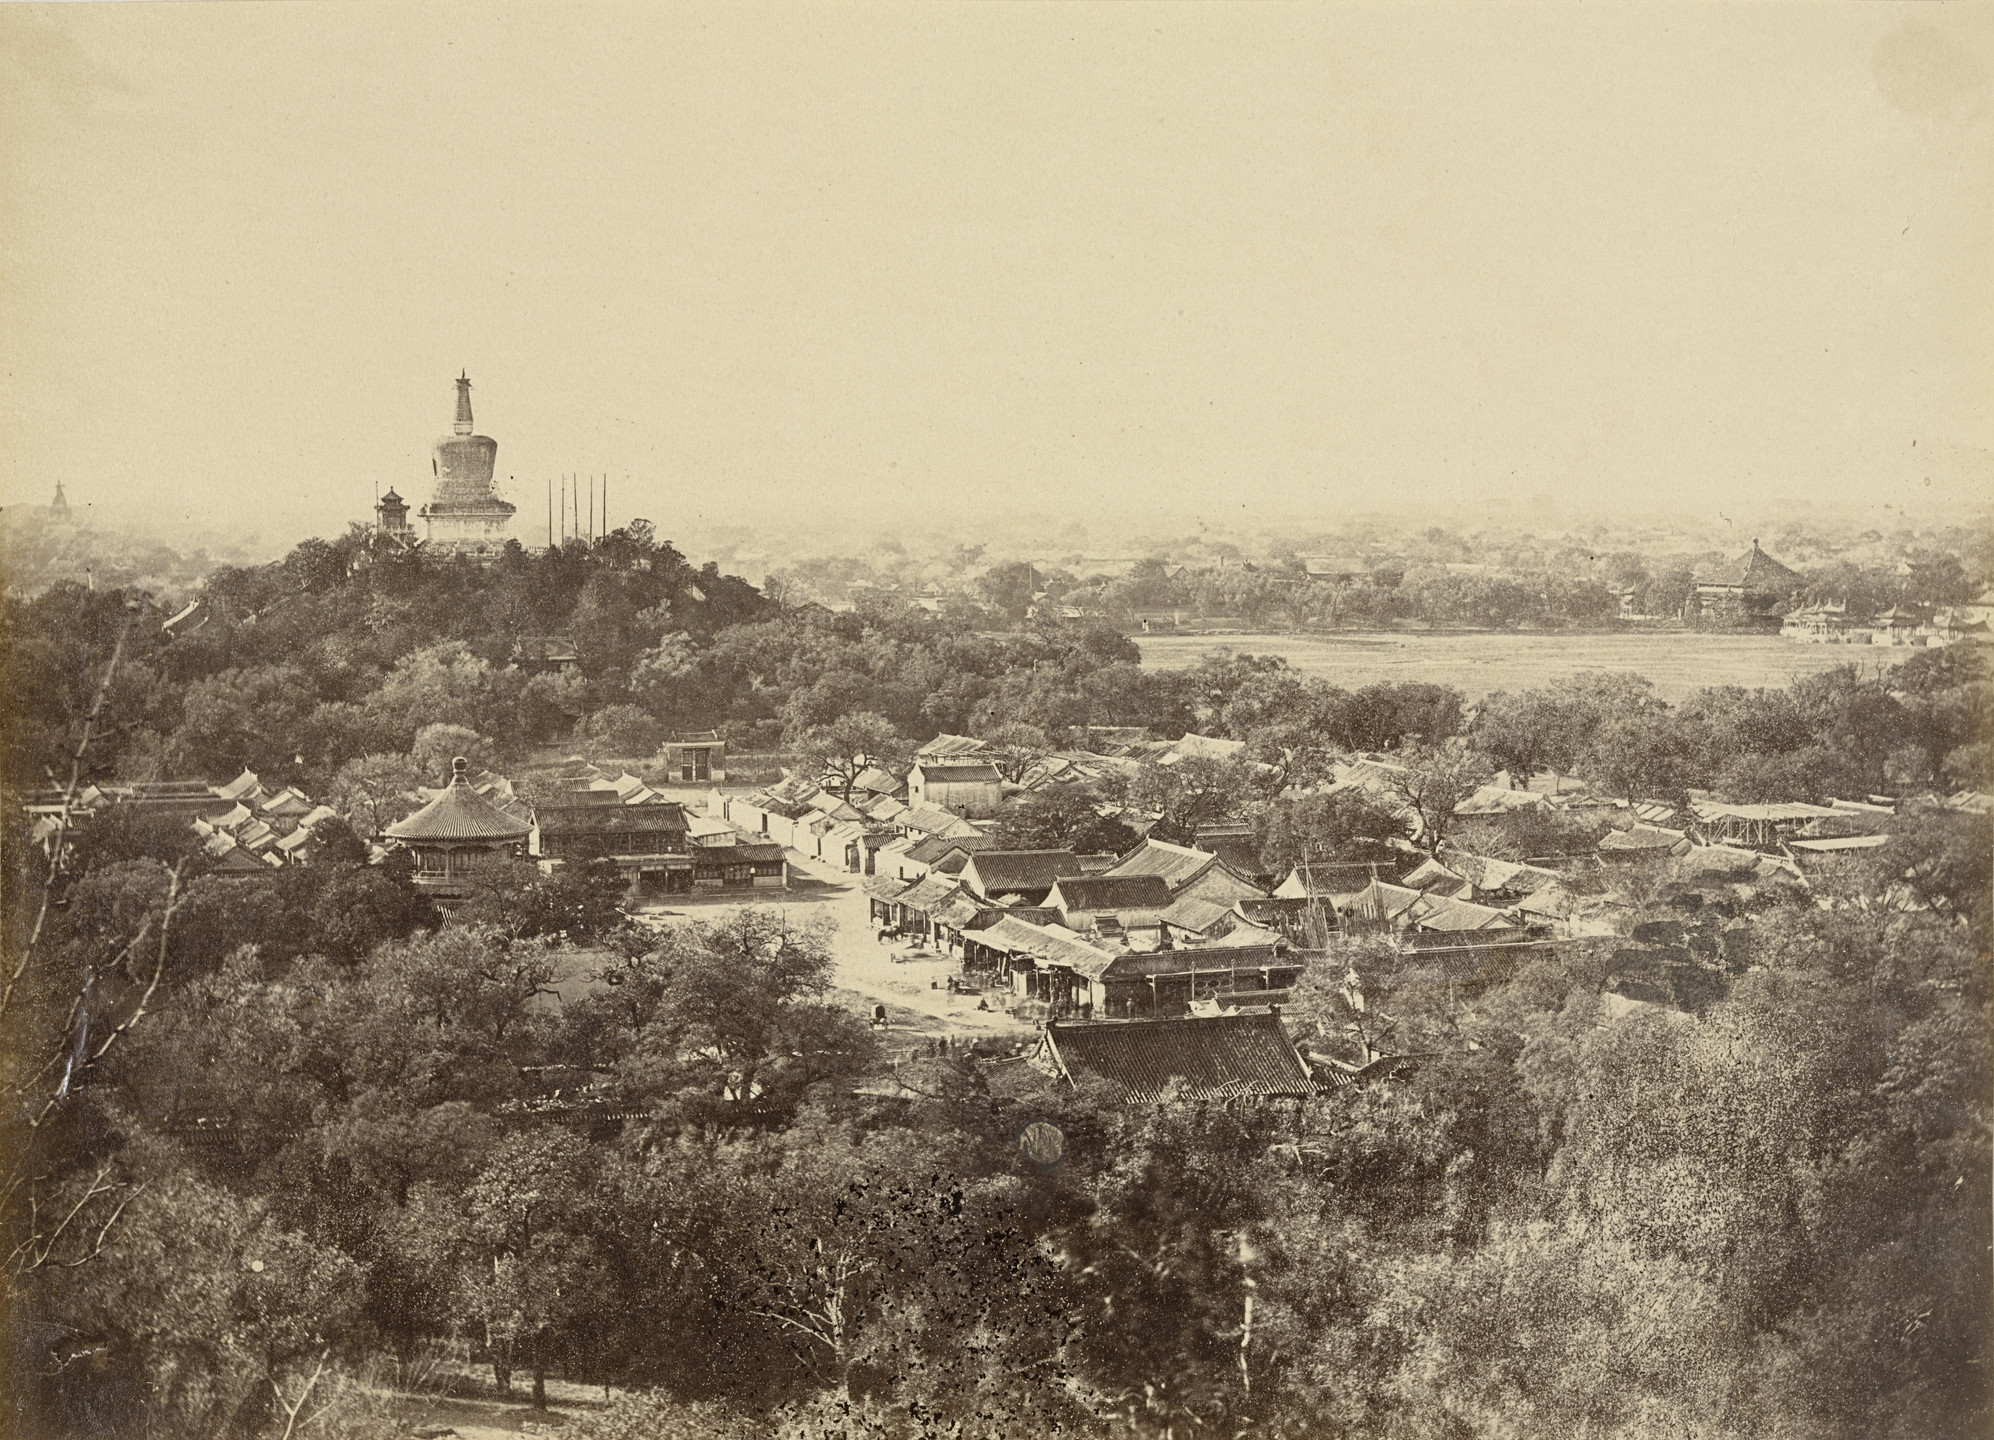 Felice Beato. View of the Gardens and Buddhist Temple of Peking, October 29, 1860. 1860